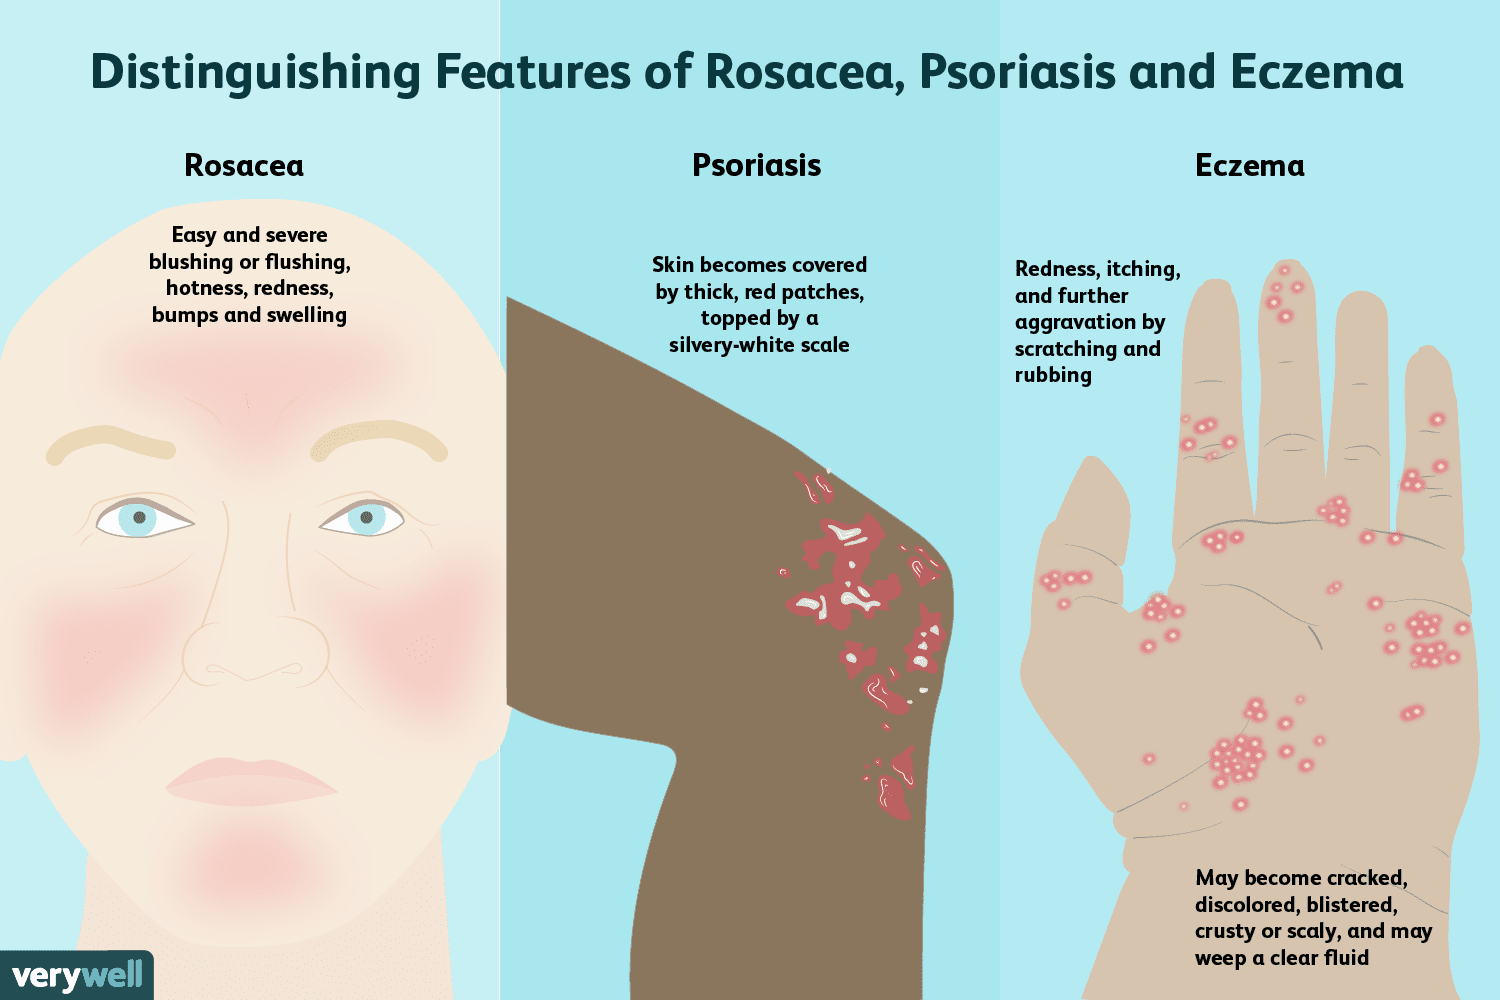 hight resolution of distinguishing features of rosacea psoriasis and eczema